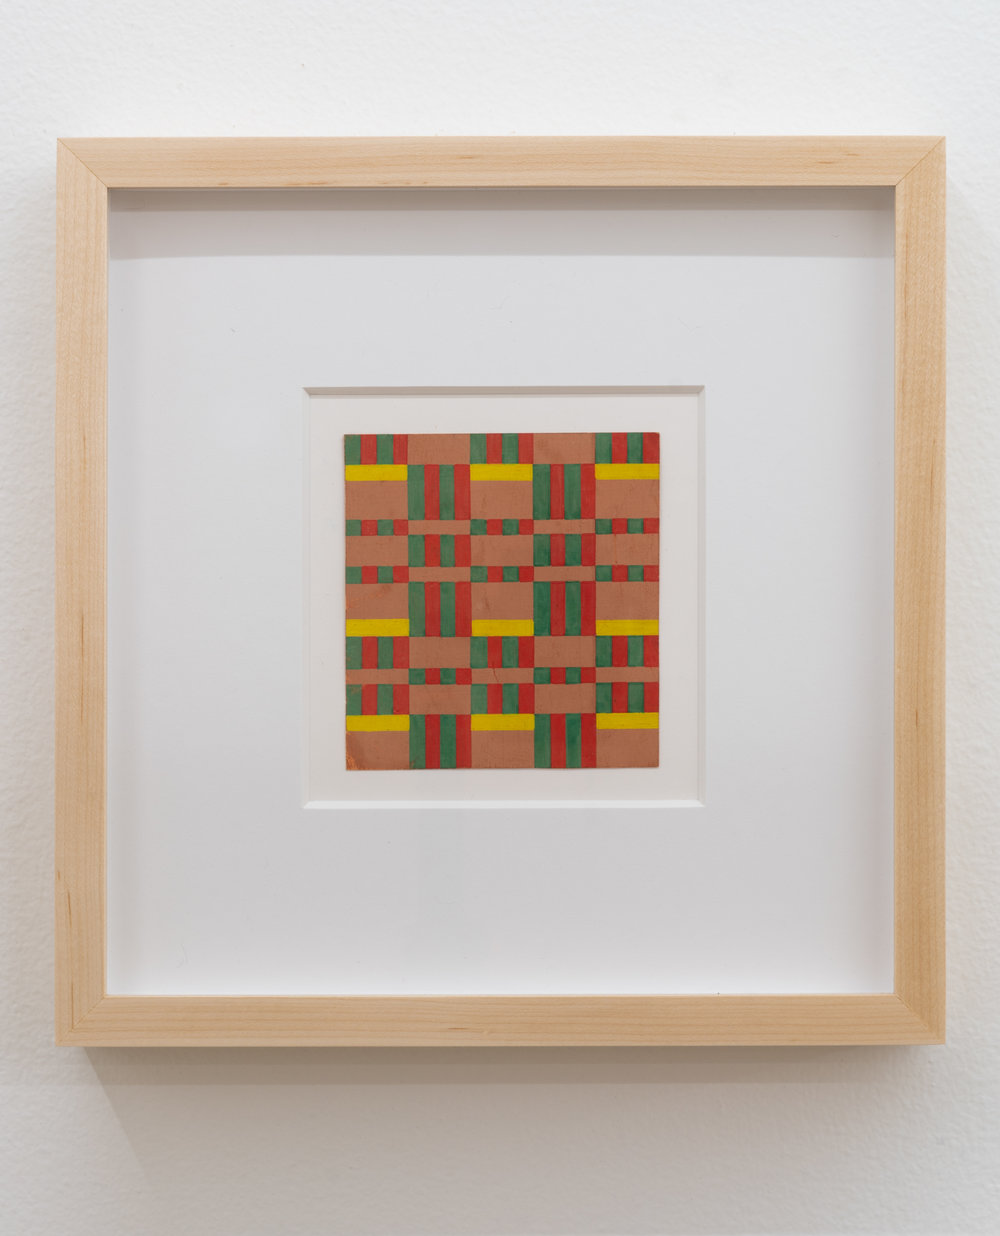 Paula Brunner Abelow,  Pattern,  circa 1940s, Tempera on paper, 4 x 4 inches